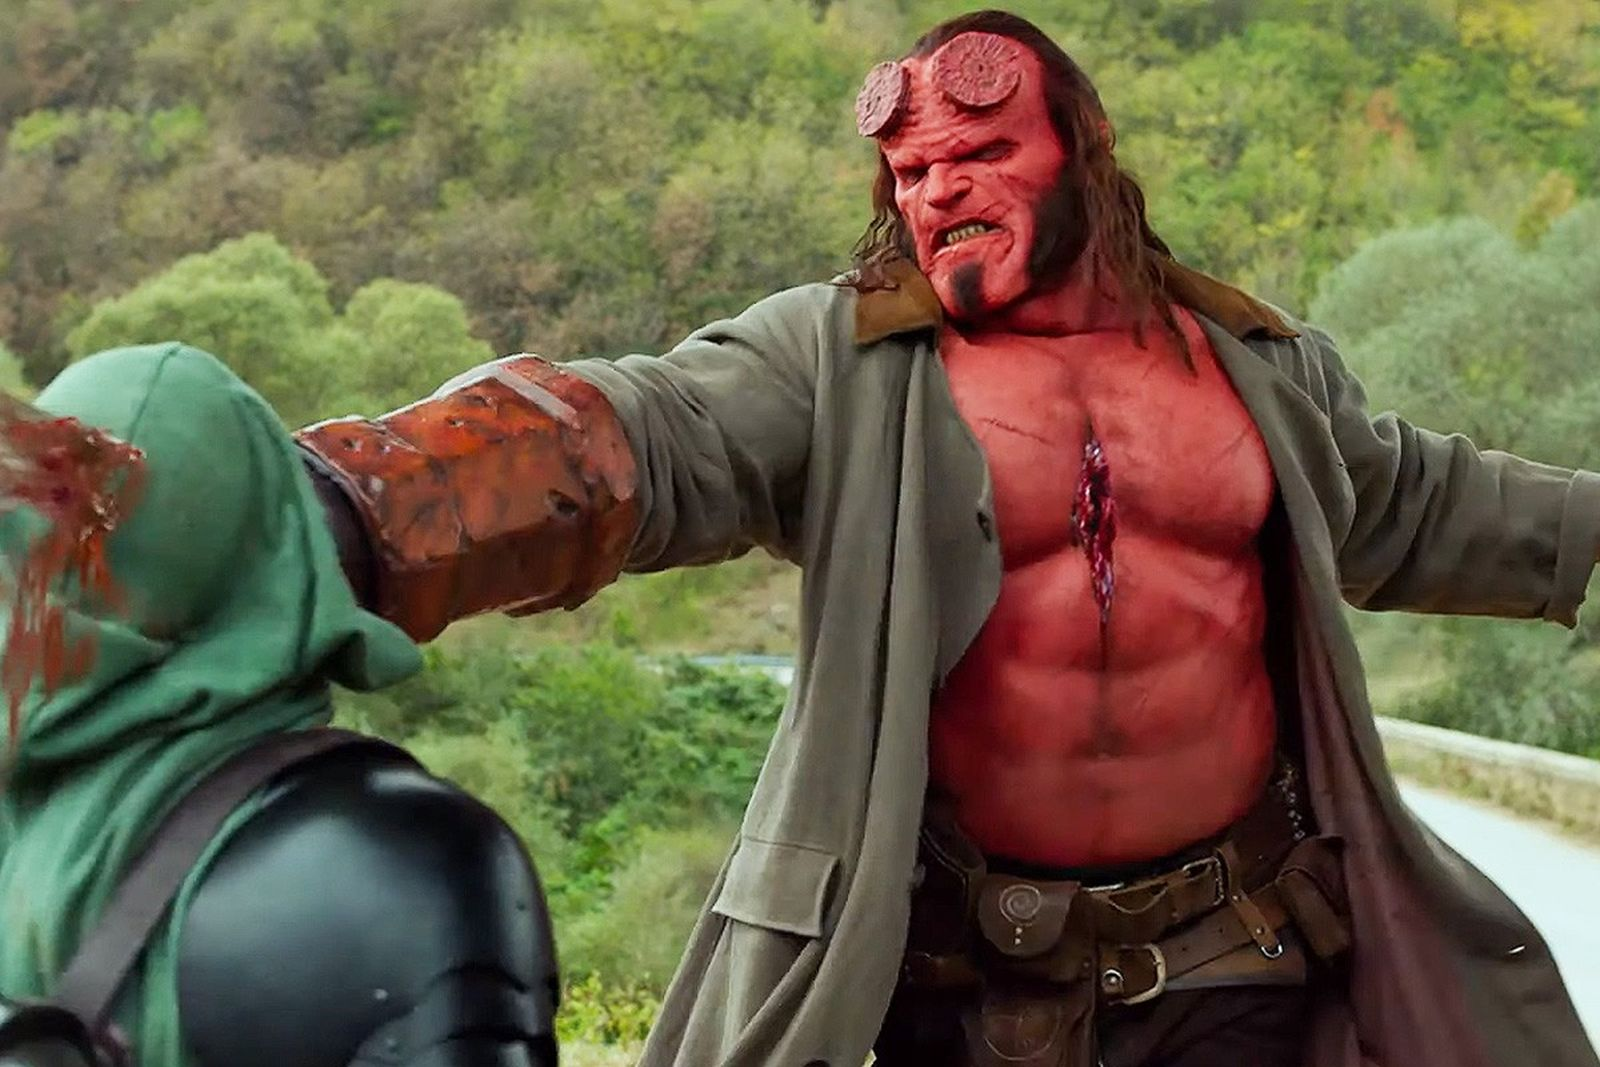 game of thrones hellboy best comments roundup Cardi B Doctor Who Kering